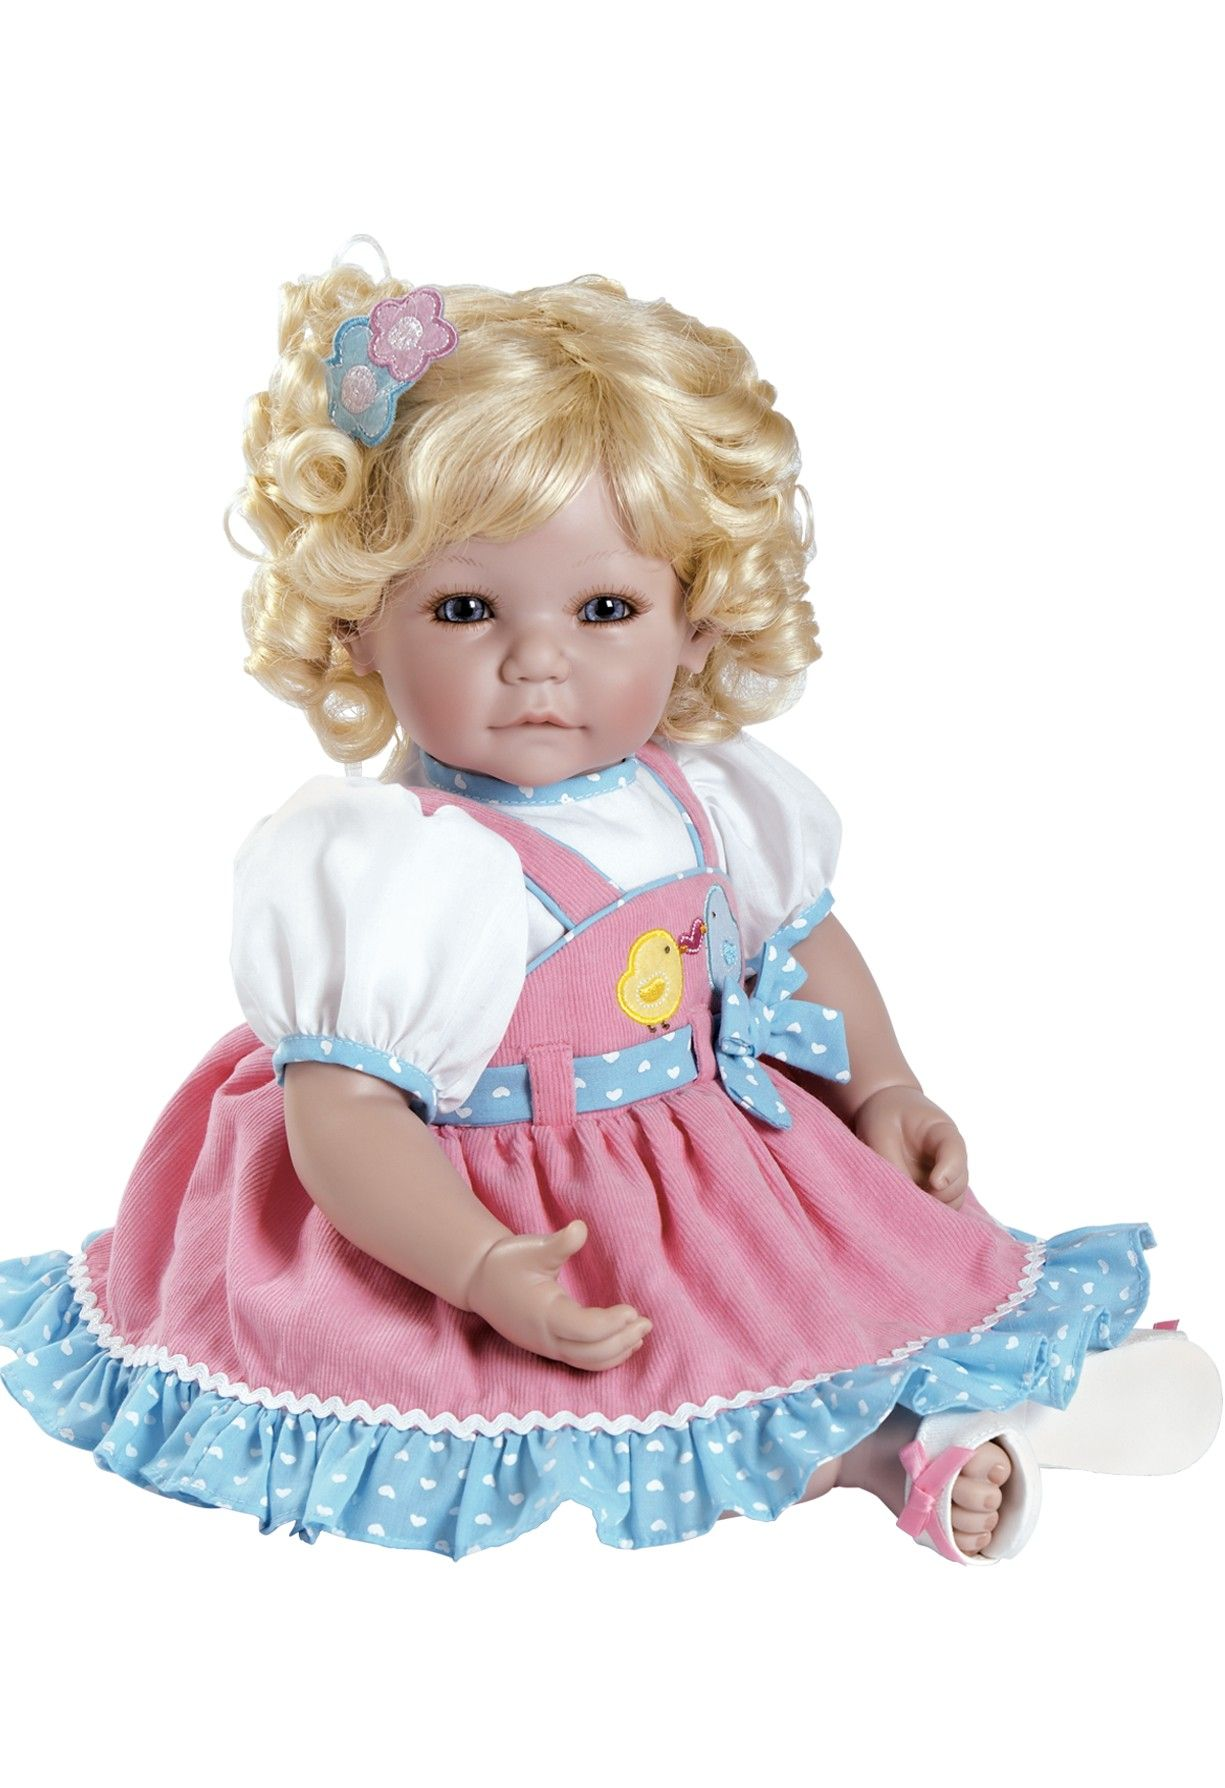 Adora 52cm 20inch Silicone Baby Dolls With Cute Short Hair Hot Wel e Lifelike Reborn Toddler Dolls Best Simulation Doll Toys Pinterest